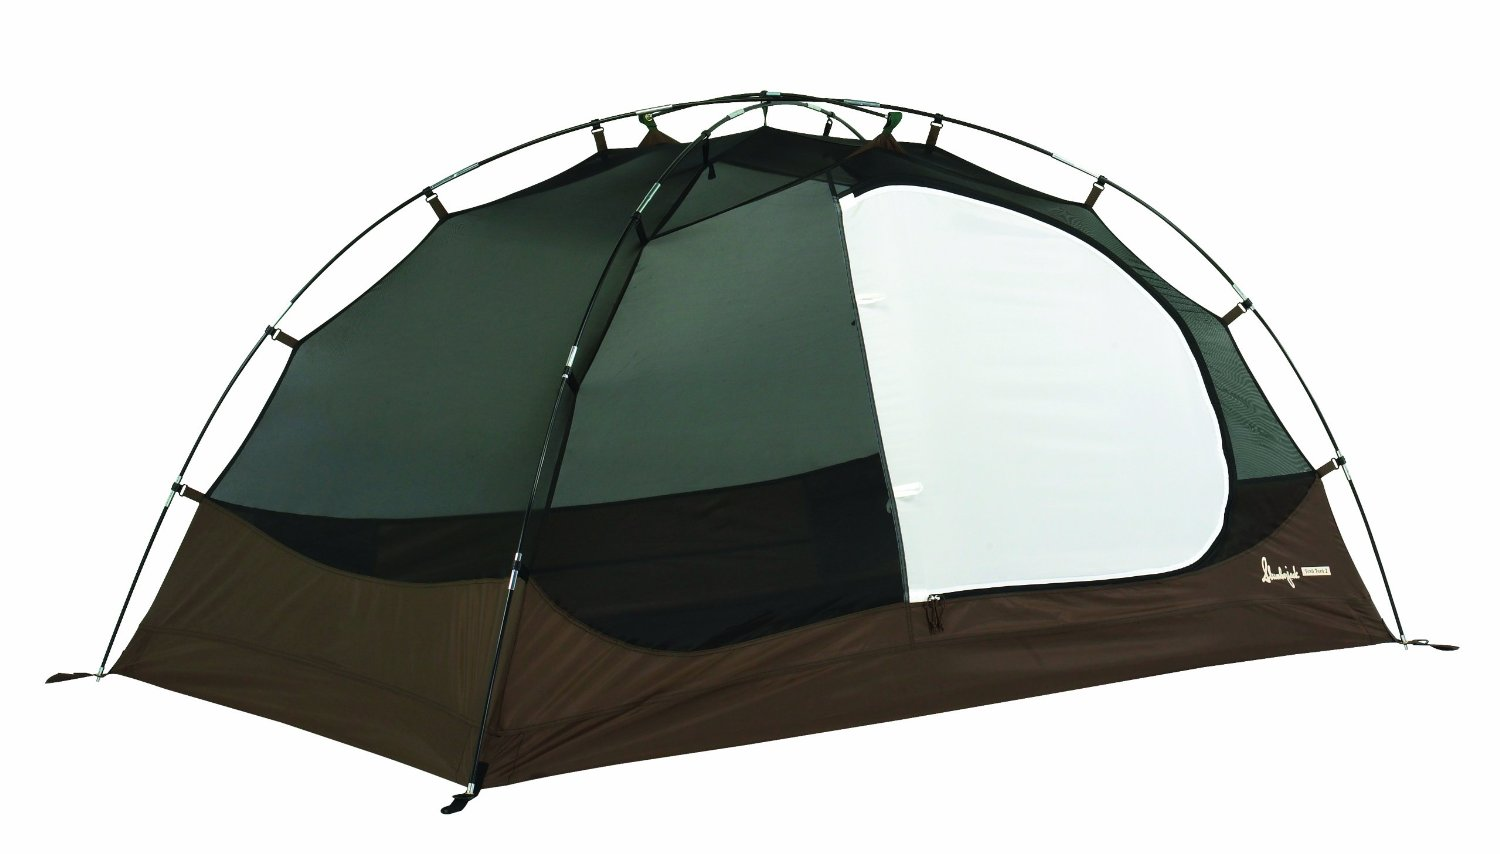 Slumberjack 2 Person Trail Tent Review